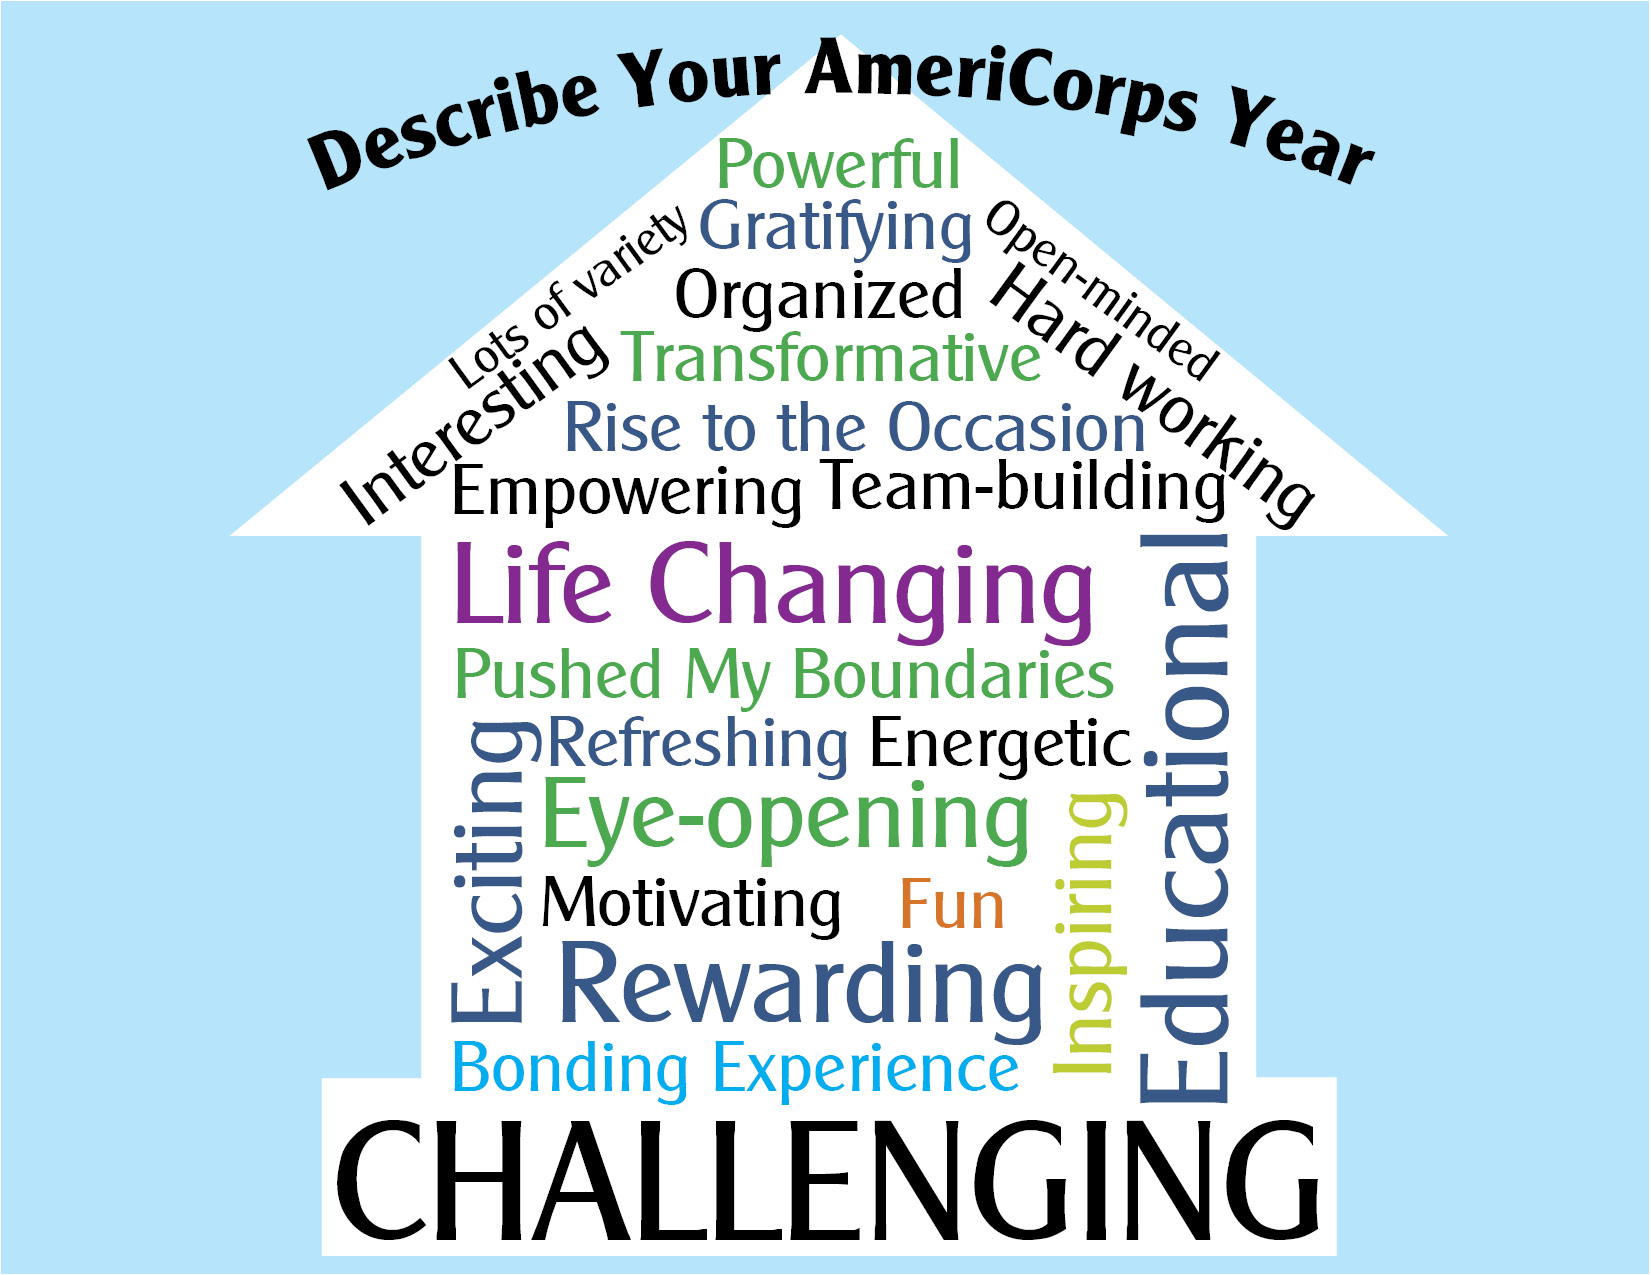 Americorps text graphics